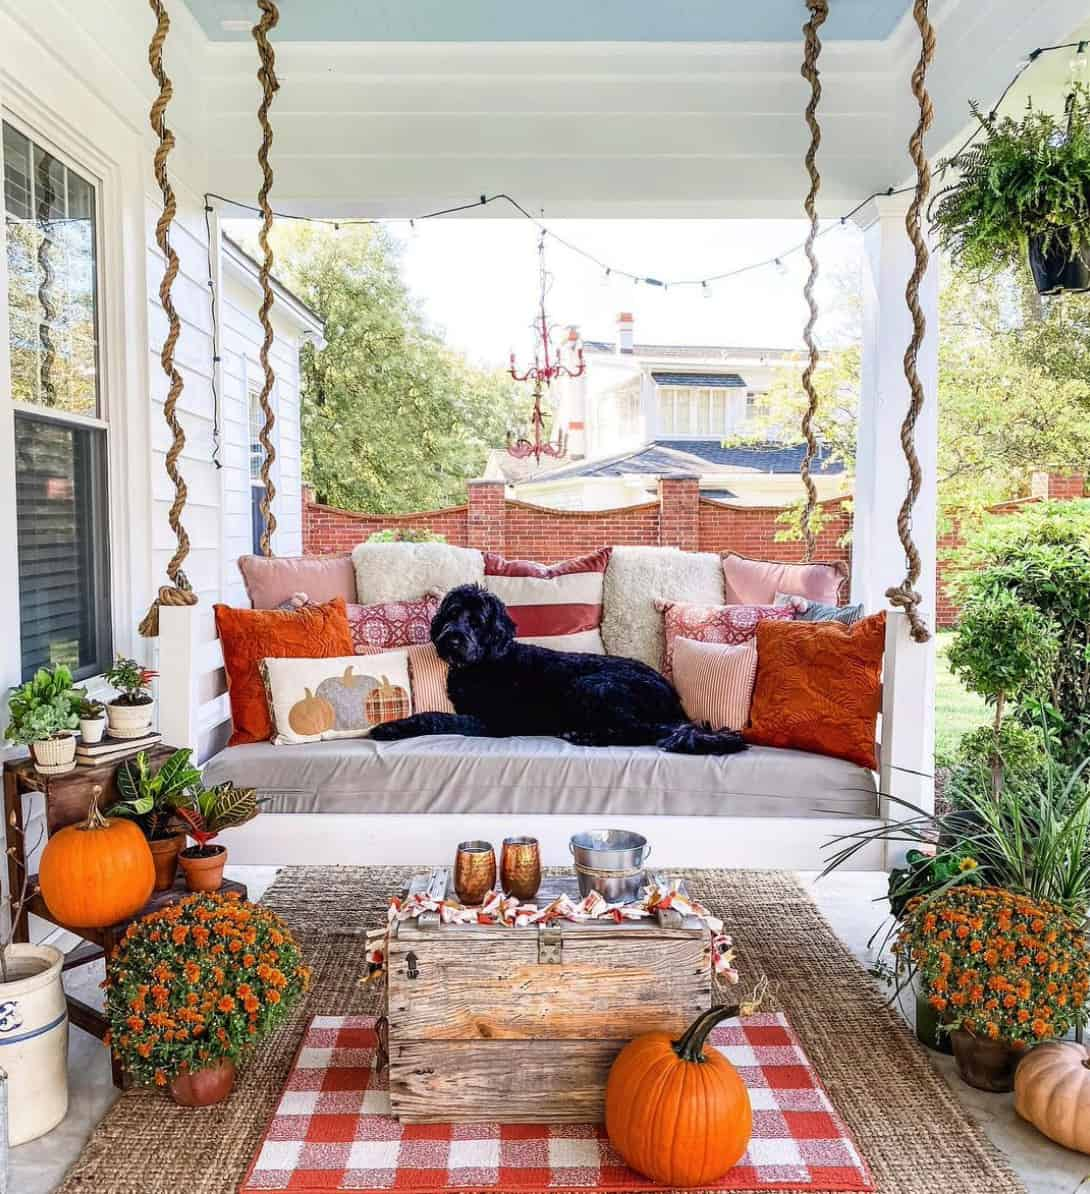 fall-porch-decorating-ideas-with-pumpkins-mums-and-a-swing